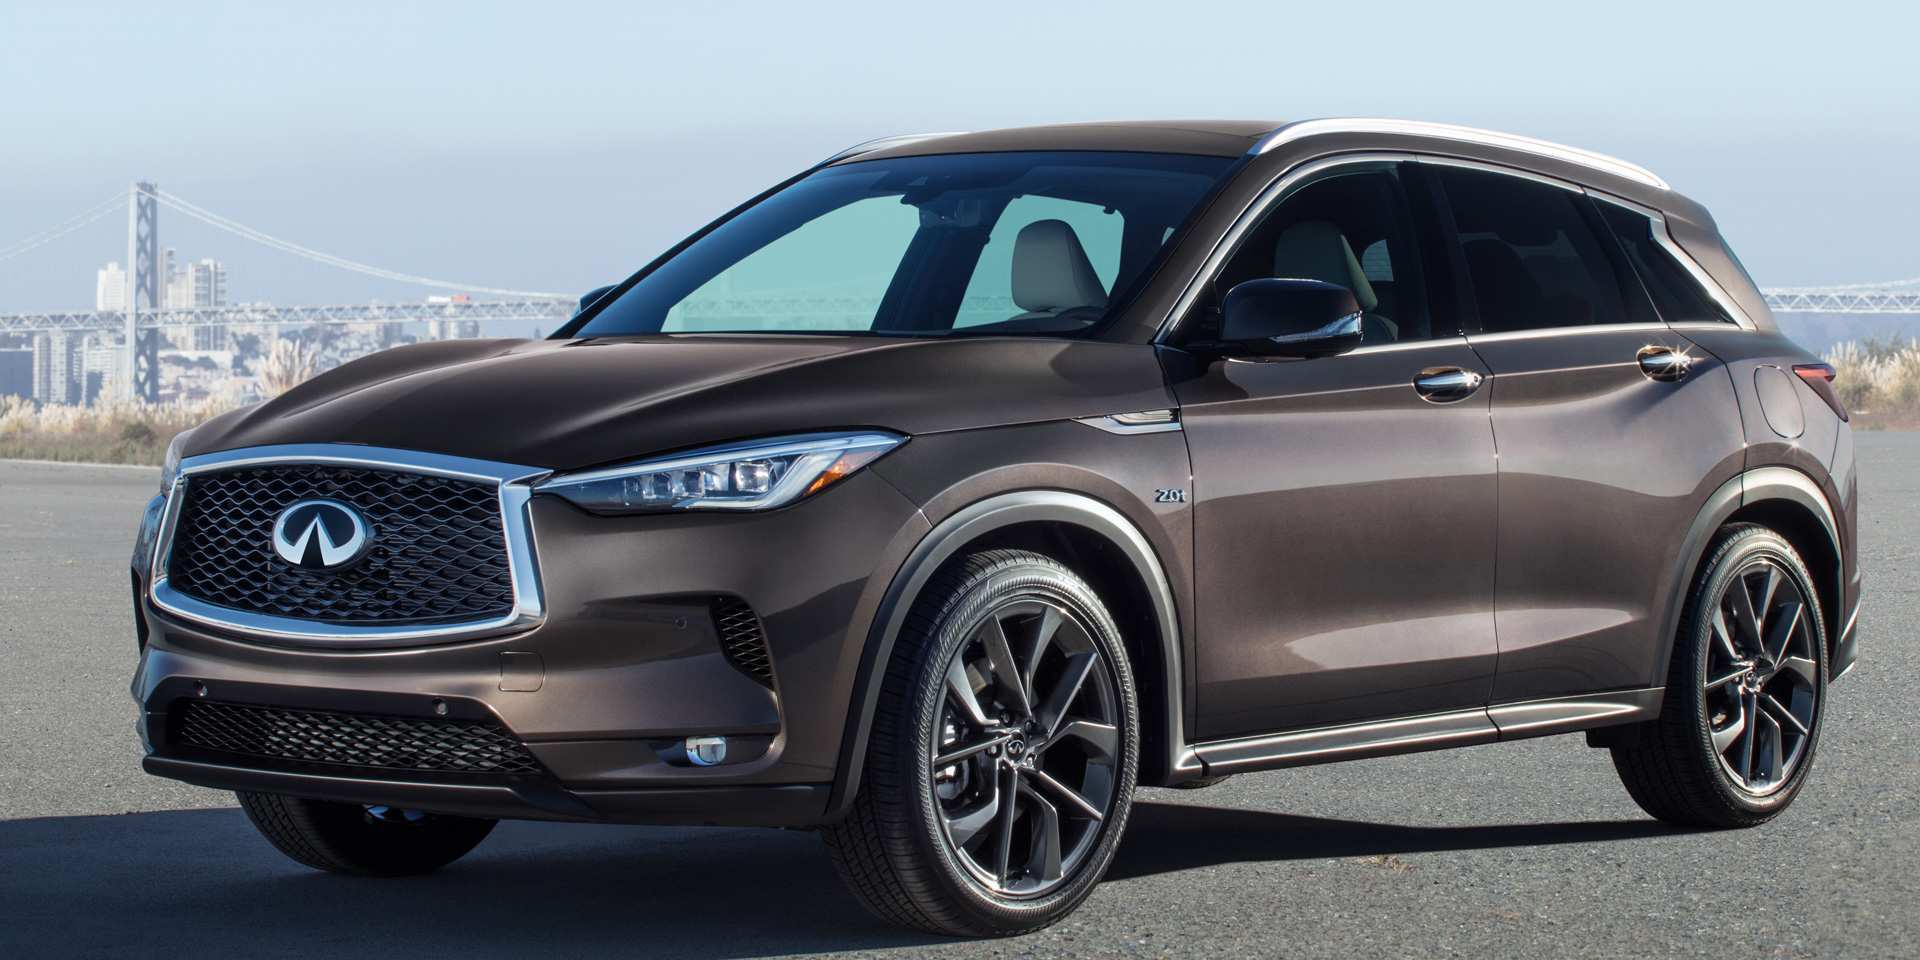 71 The 2019 Infiniti Qx50 Redesign Reviews for 2019 Infiniti Qx50 Redesign